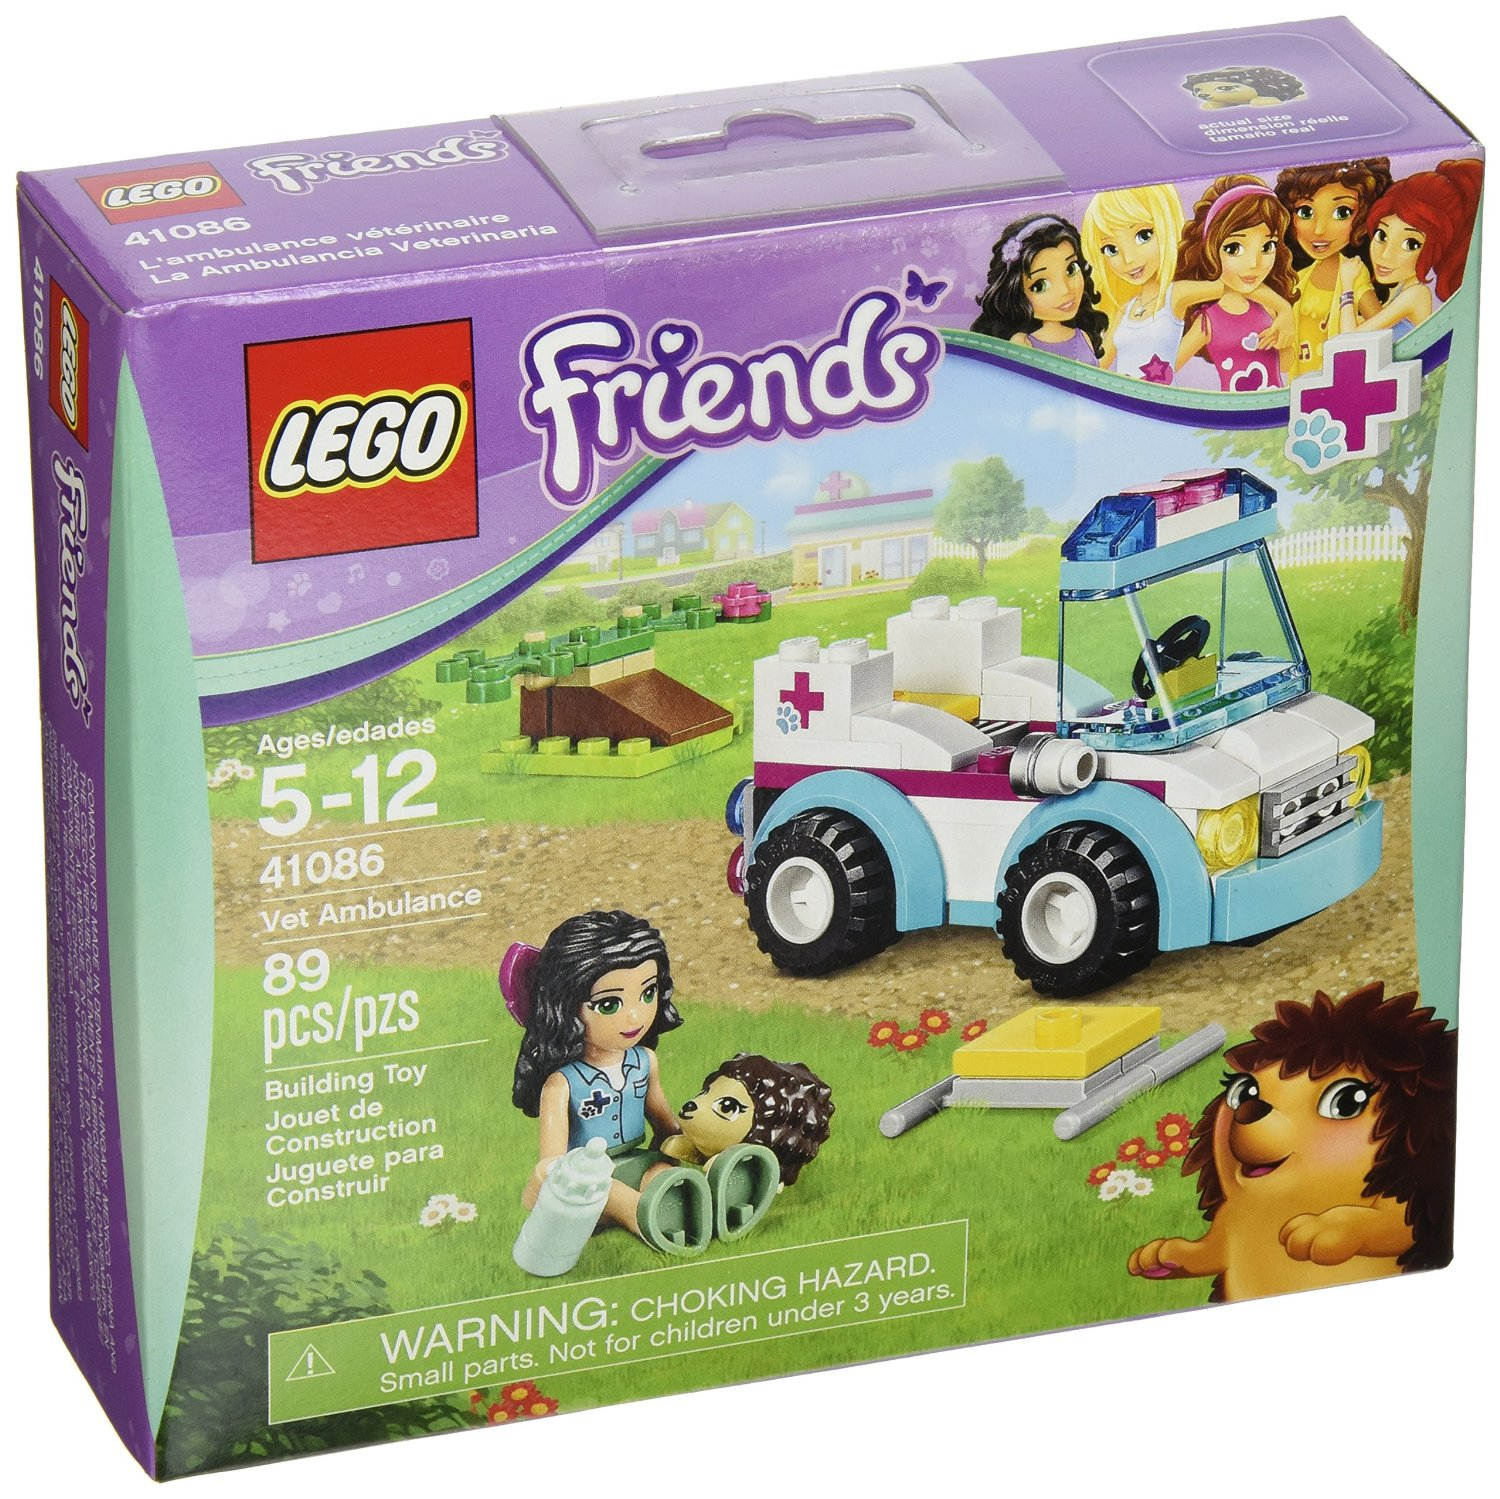 New Lego Friends Disney Princess Sets Stretching A Buck